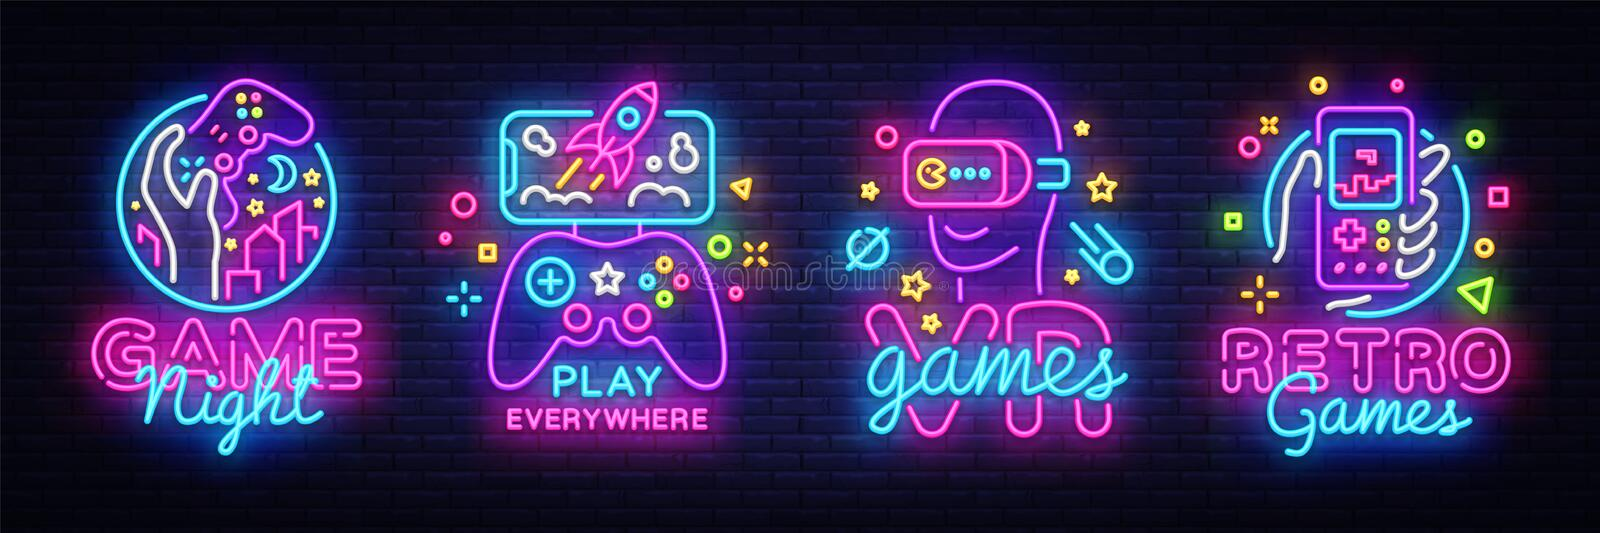 Video Games logos collection neon sign Vector design template. Conceptual Vr games, Retro Game night logo in neon style royalty free illustration